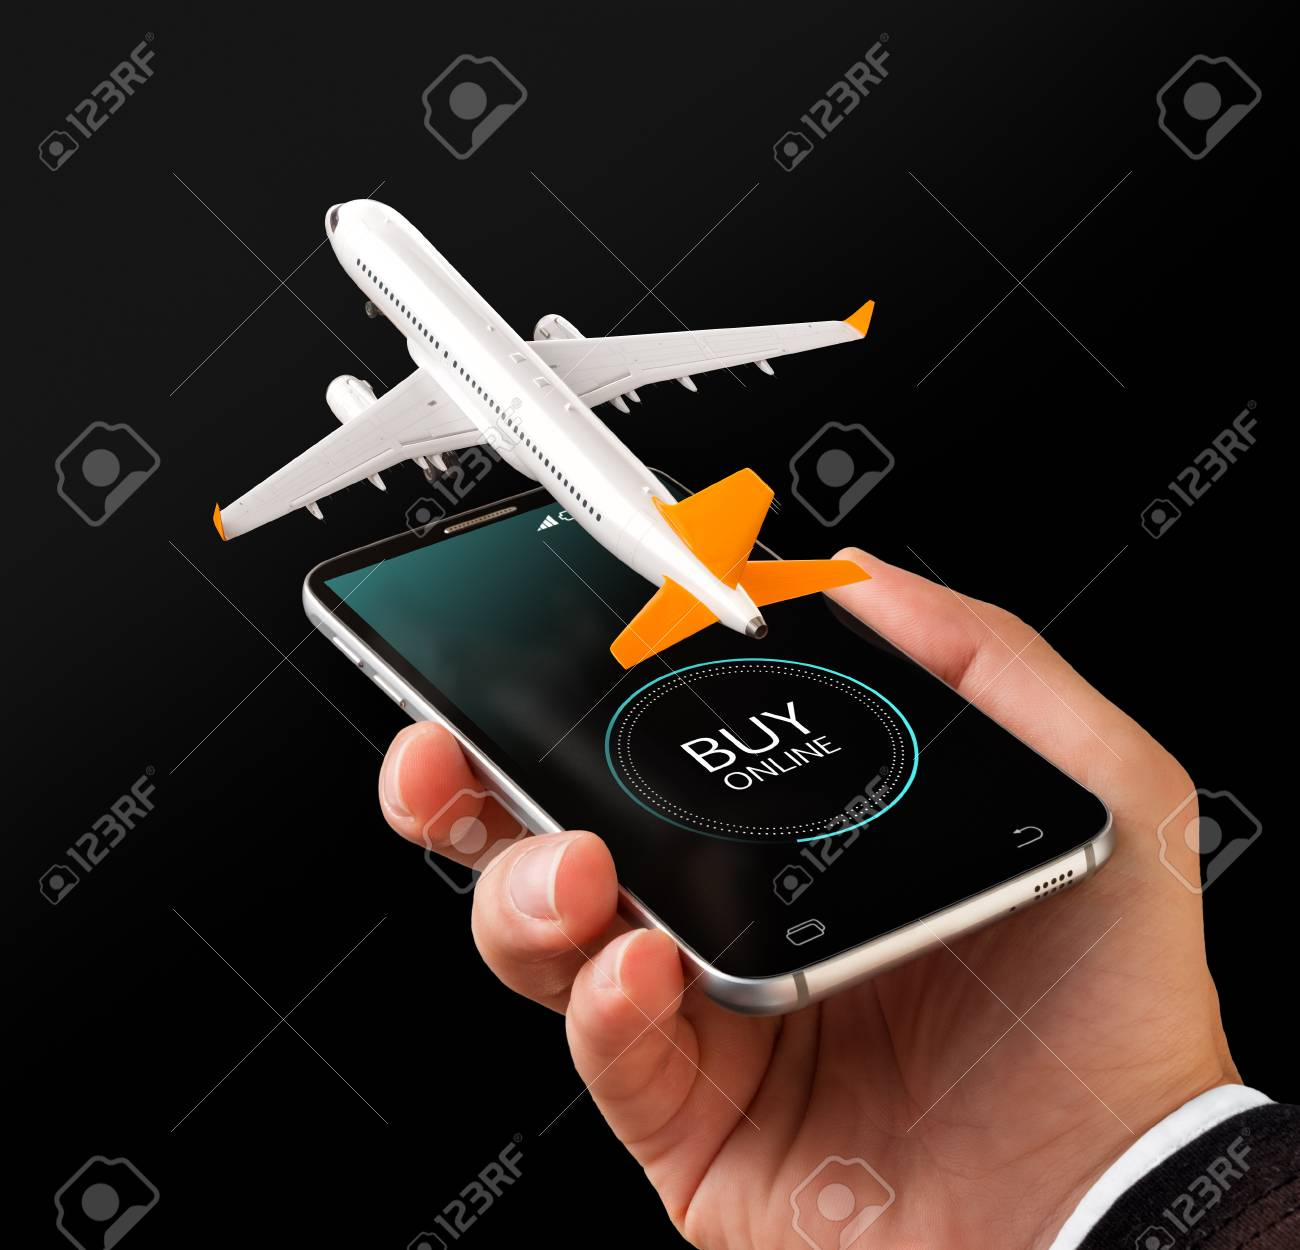 Smartphone application for online searching, buying and booking flights on the internet. Unusual 3D illustration of commercial airplane on smartphone in hand - 85250987